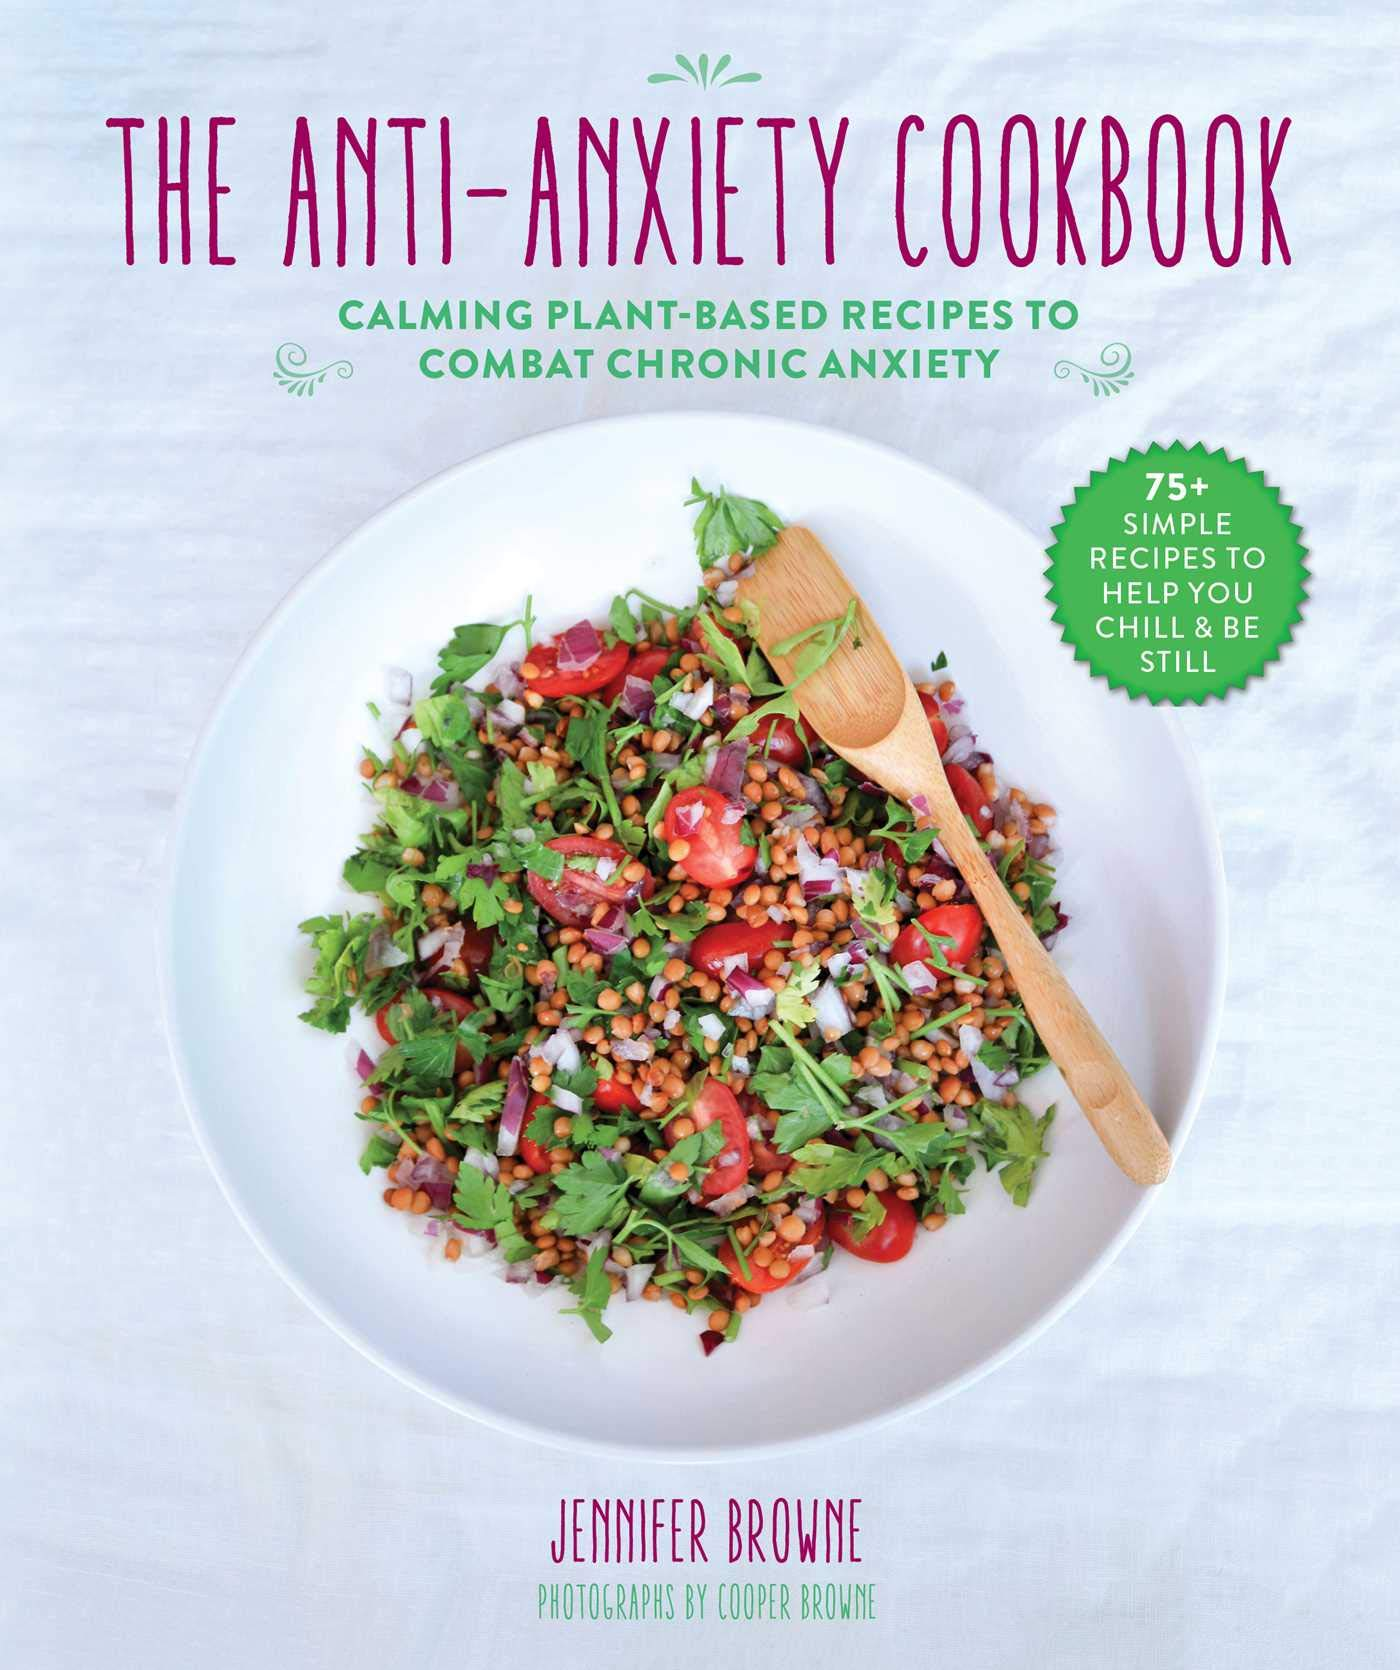 Anti Anxiety Cookbook Calming Plant Based Recipes product image